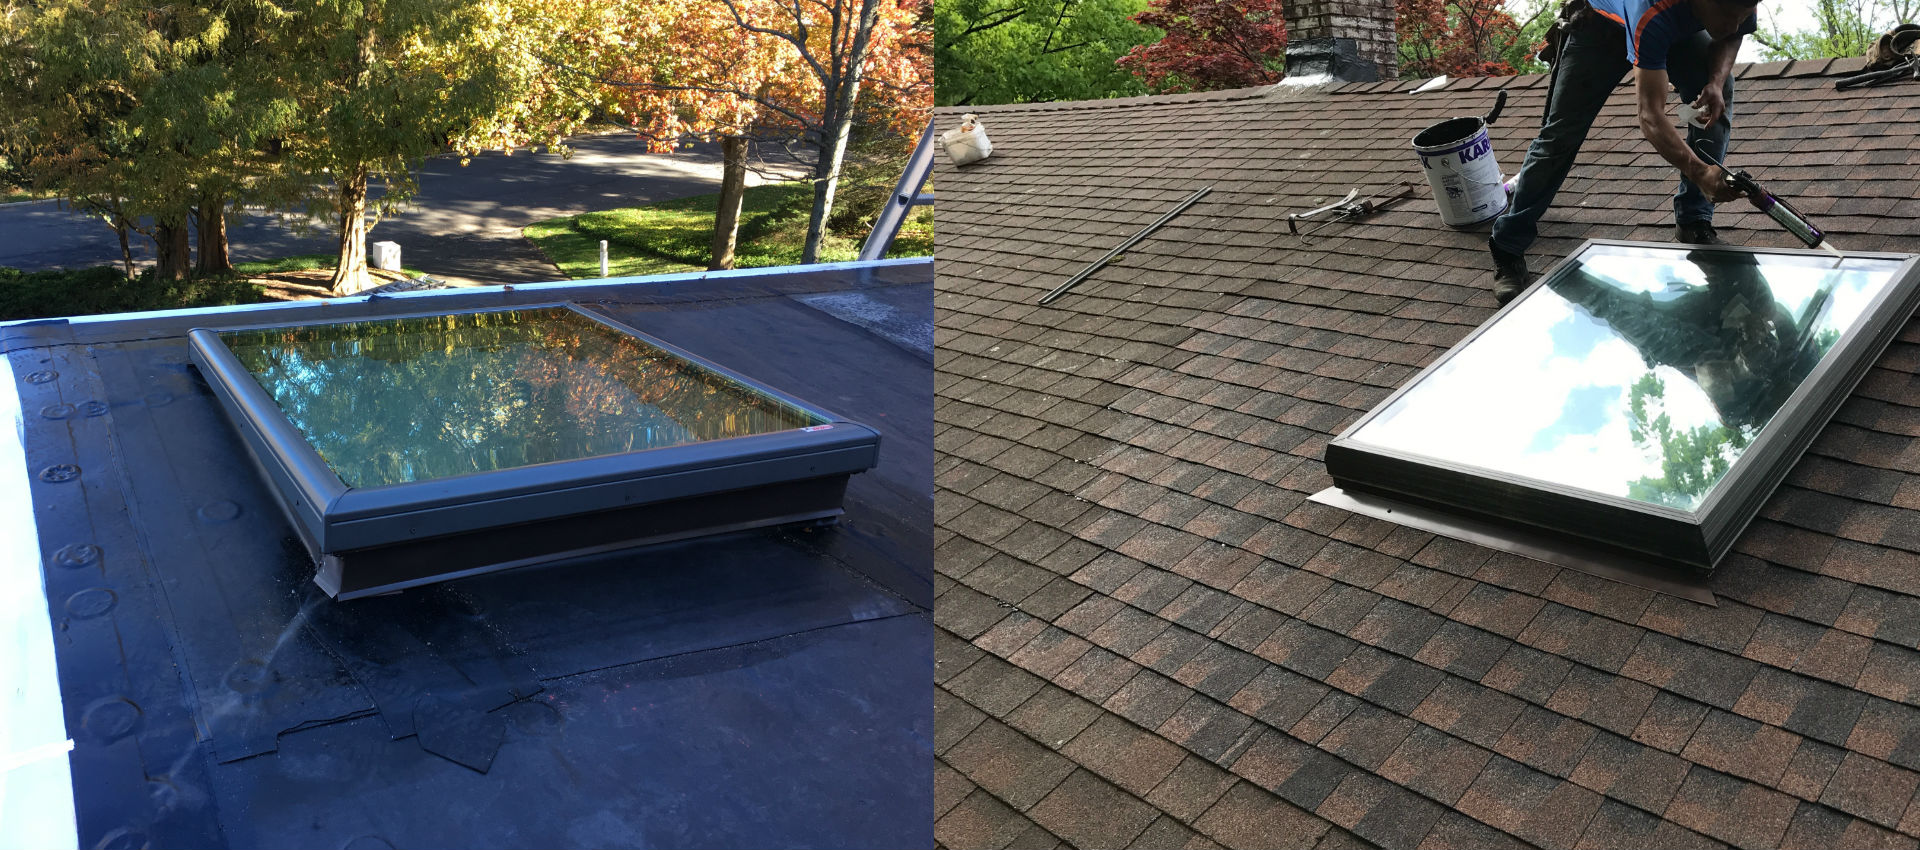 Skylight Installation Near Me Three Brothers Roofing Contractor Local Skylight Roofing Repair Services Over 20 Years Of Experience Call Today Roof Repair Nj